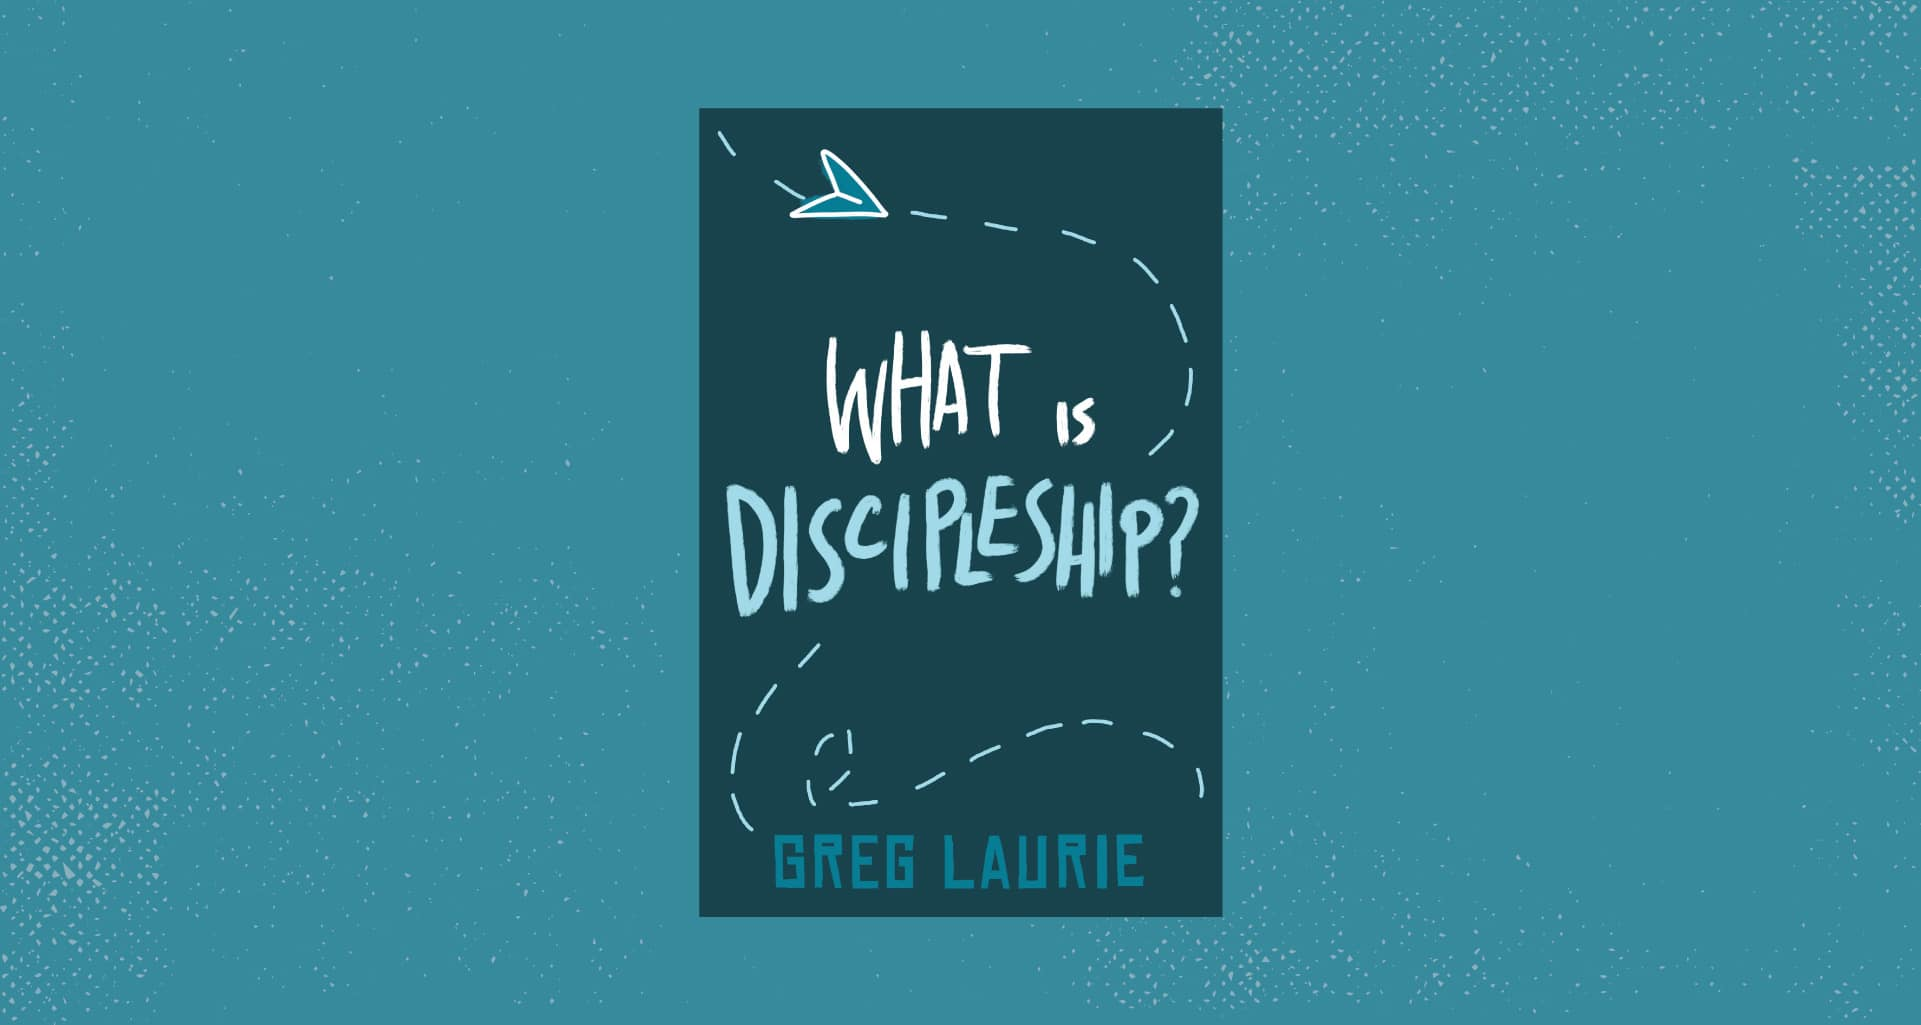 what is is discipleship greg laurie e-book cover